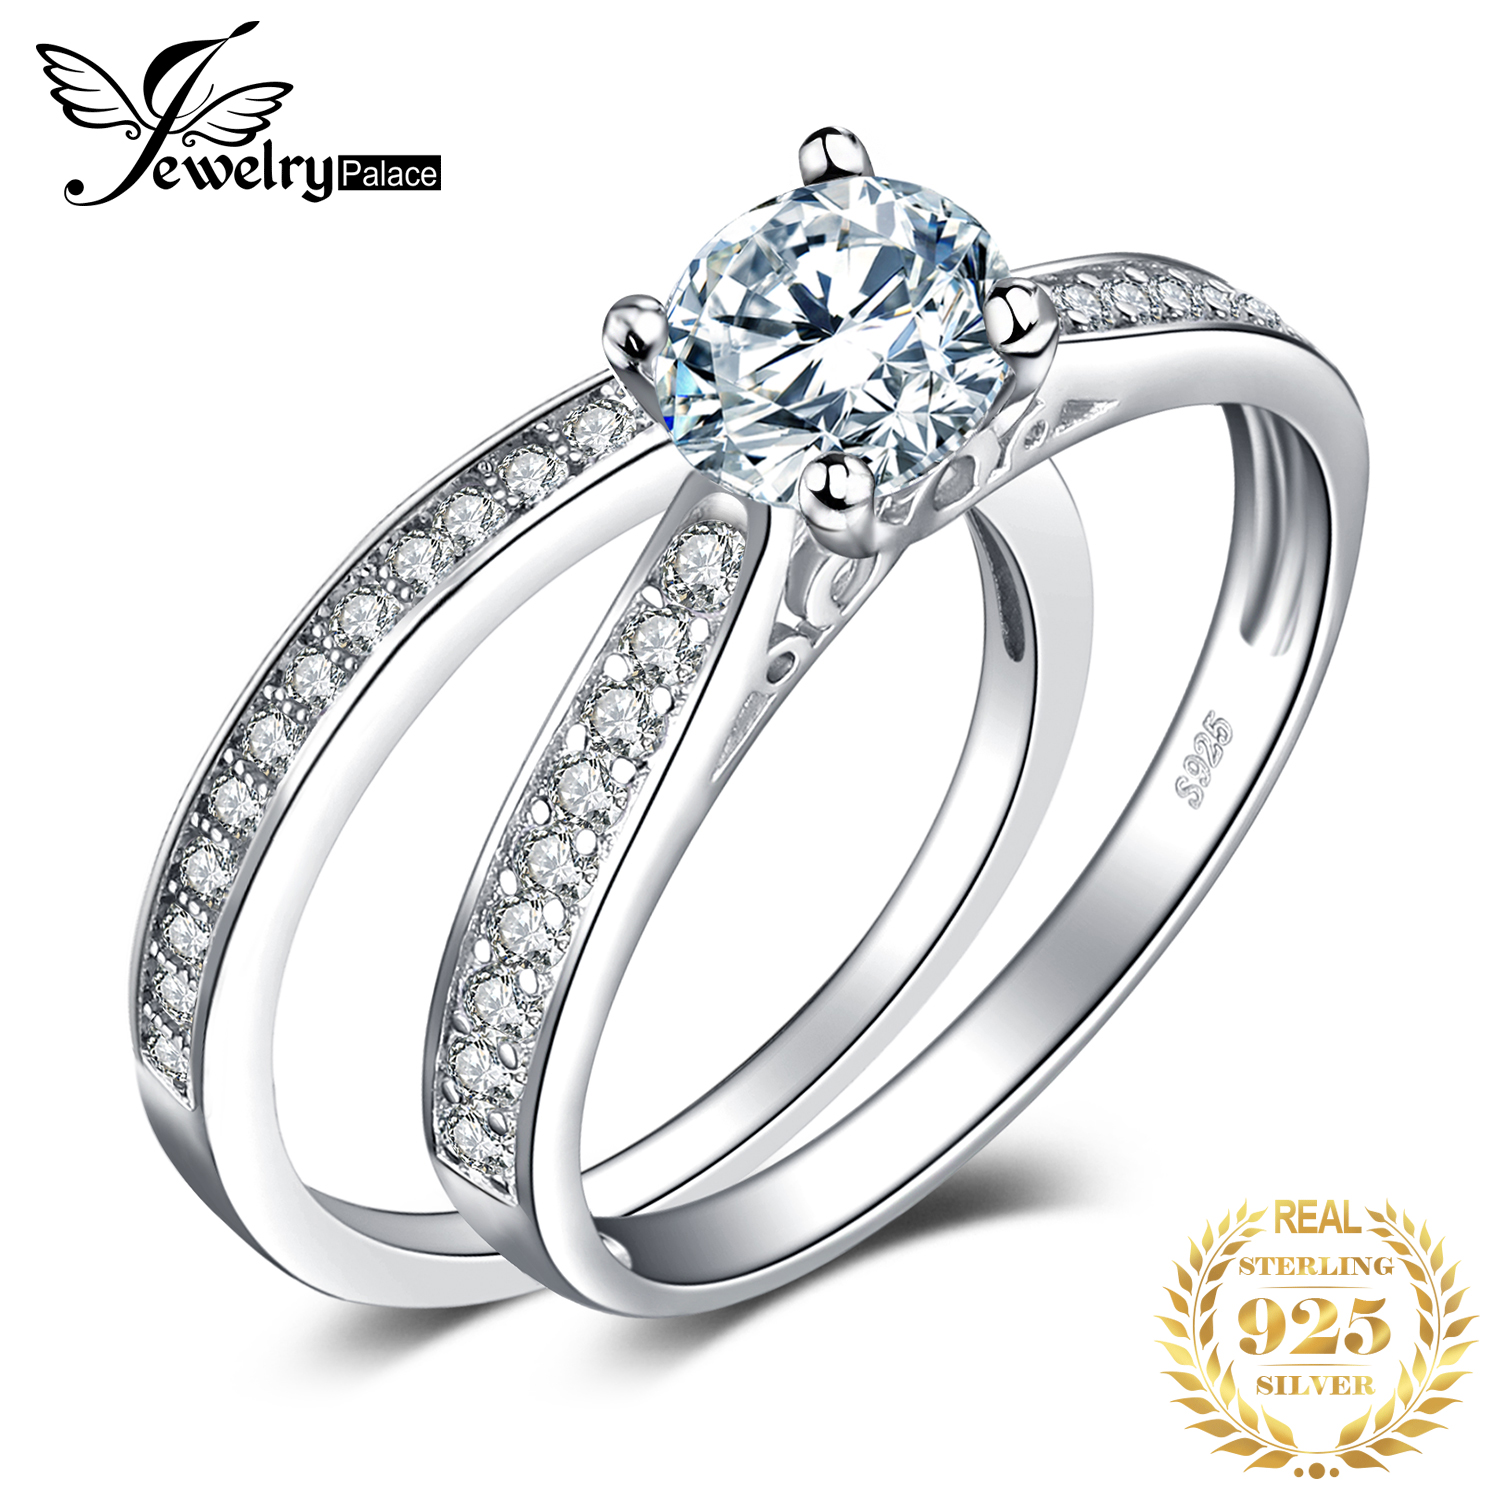 Jpalace Cz Engagement Ring Set 925 Sterling Silver Rings For Women Anniversary Wedding Rings Band Bridal Sets Silver 925 Jewelry Rings Promise Gift Giftsgift Jewelry Aliexpress